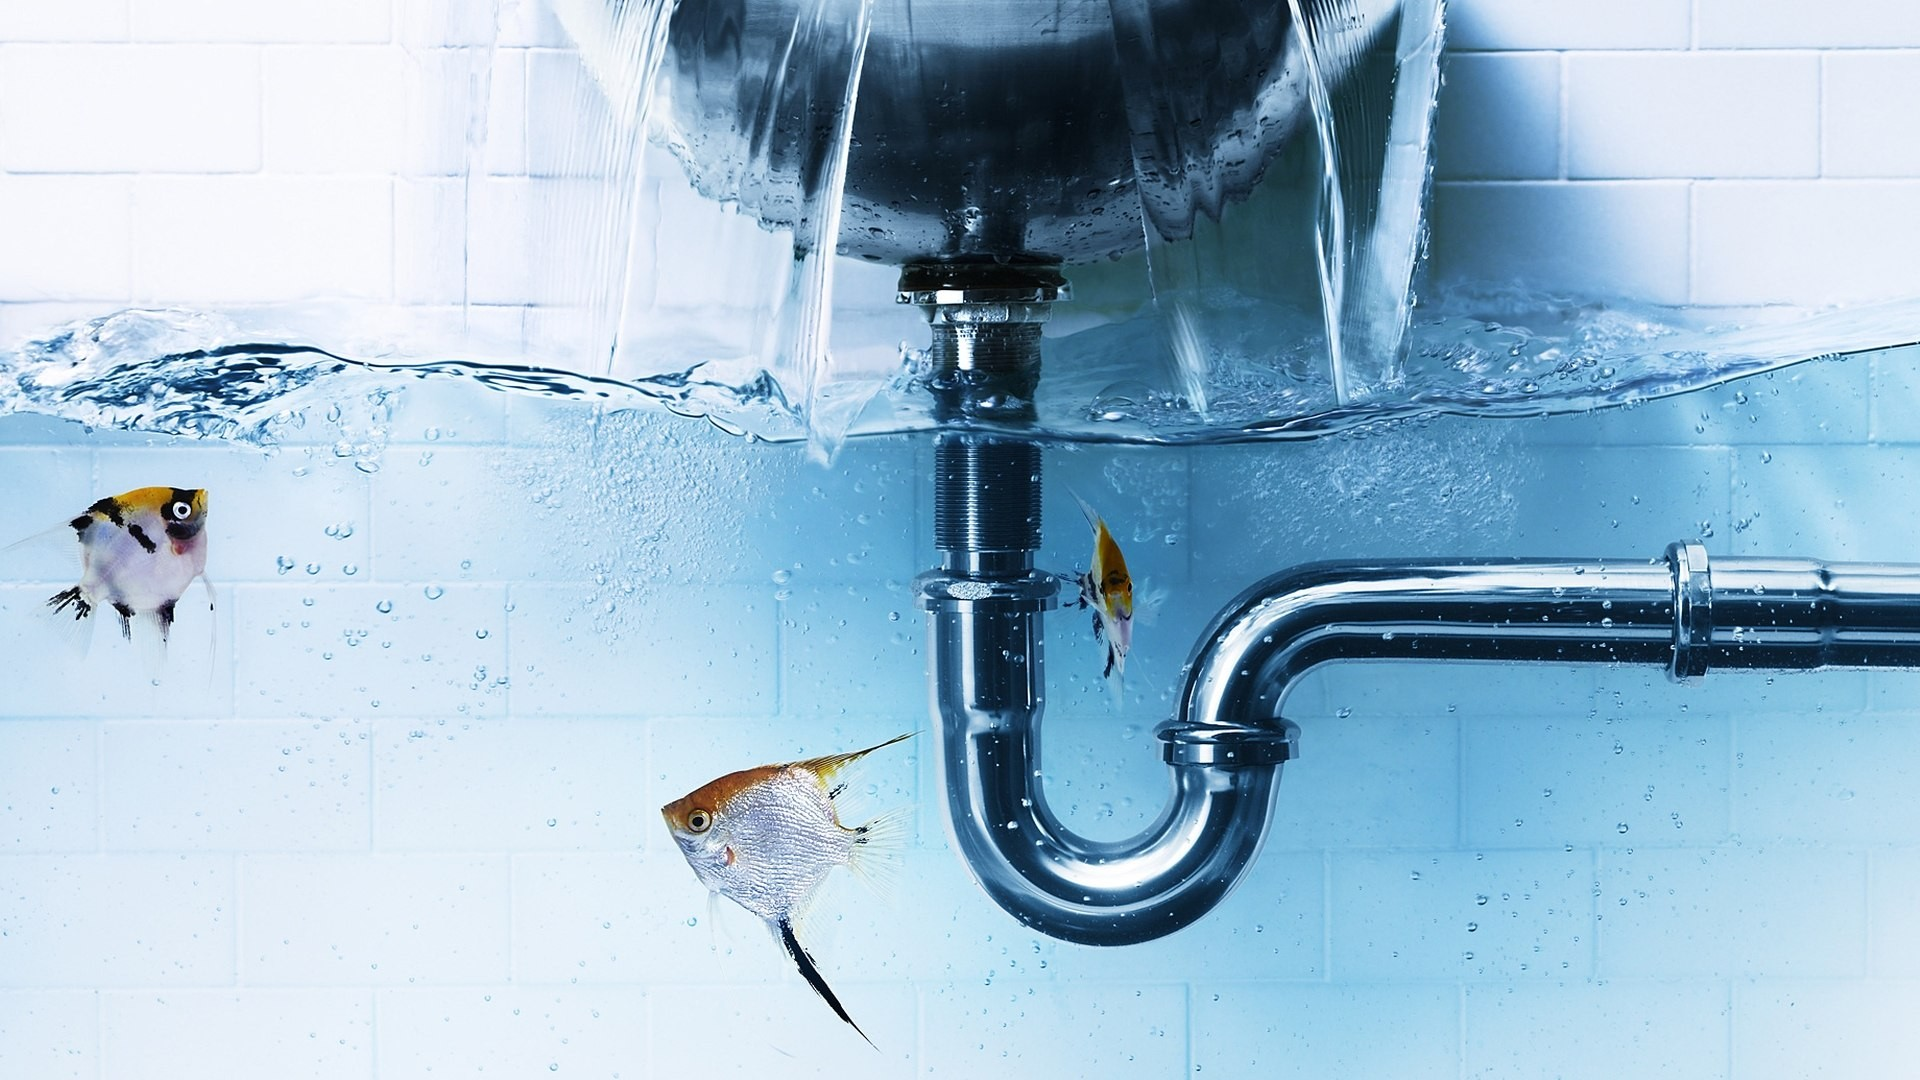 3d Fish Wallpaper For Mobile Photo Manipulation Water Pipes Underwater Fish